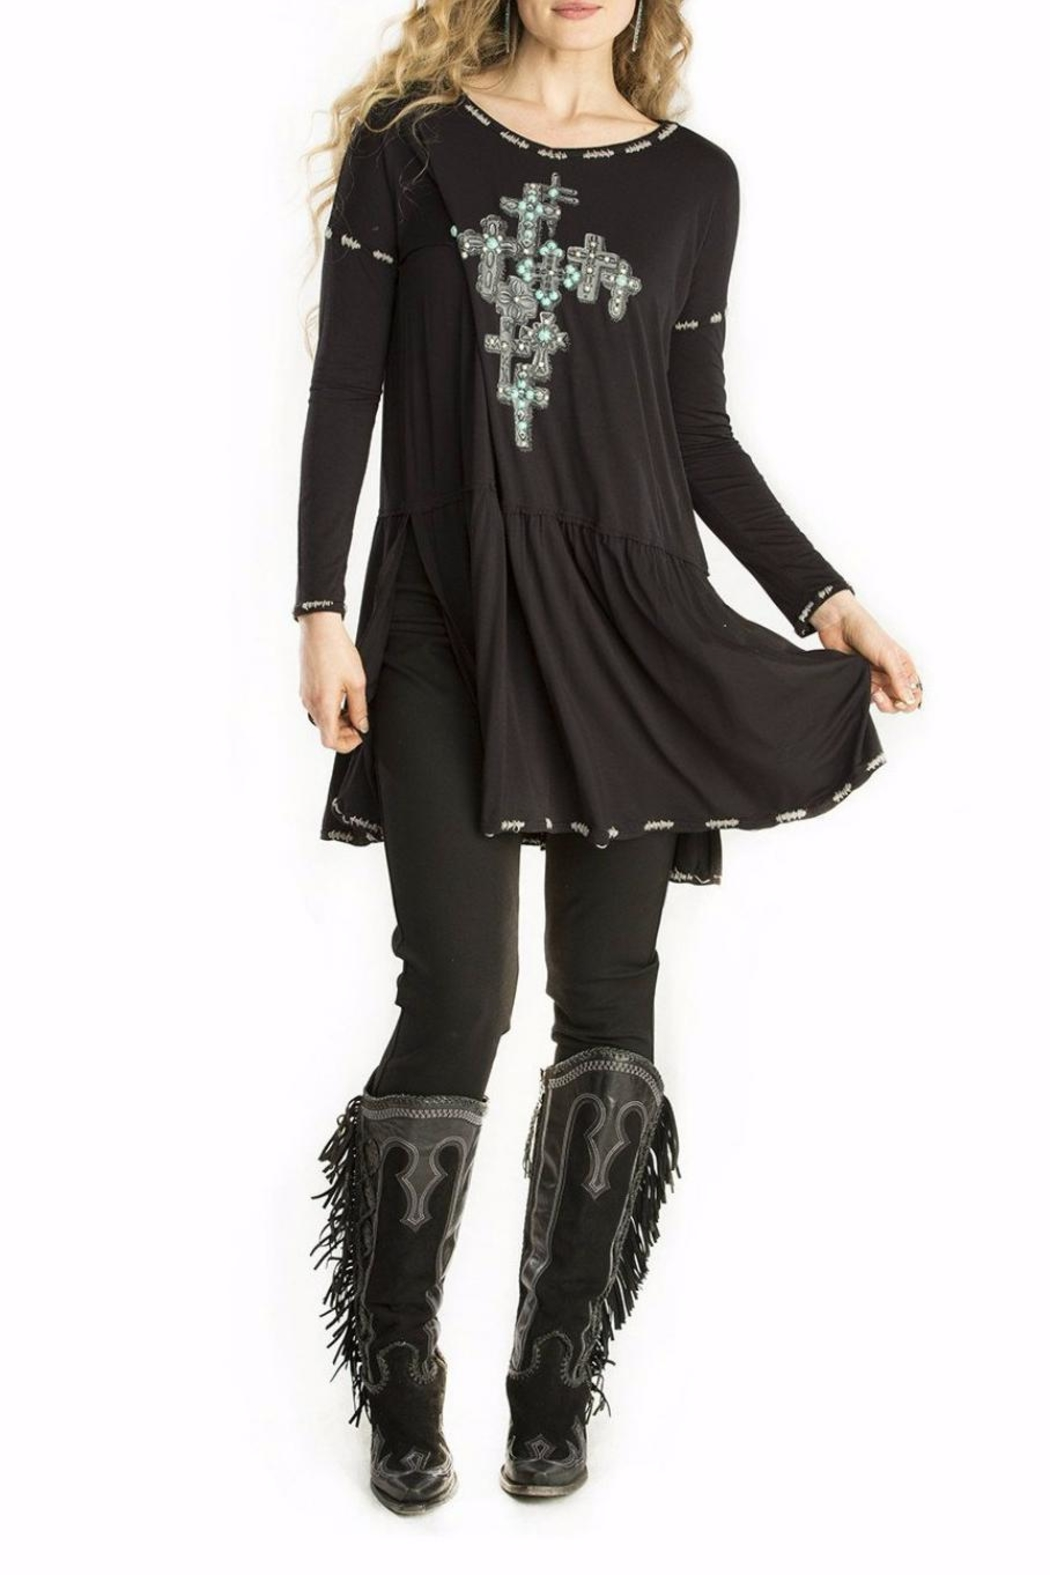 Double D Ranchwear Cross Embellished Tunic Top - Main Image